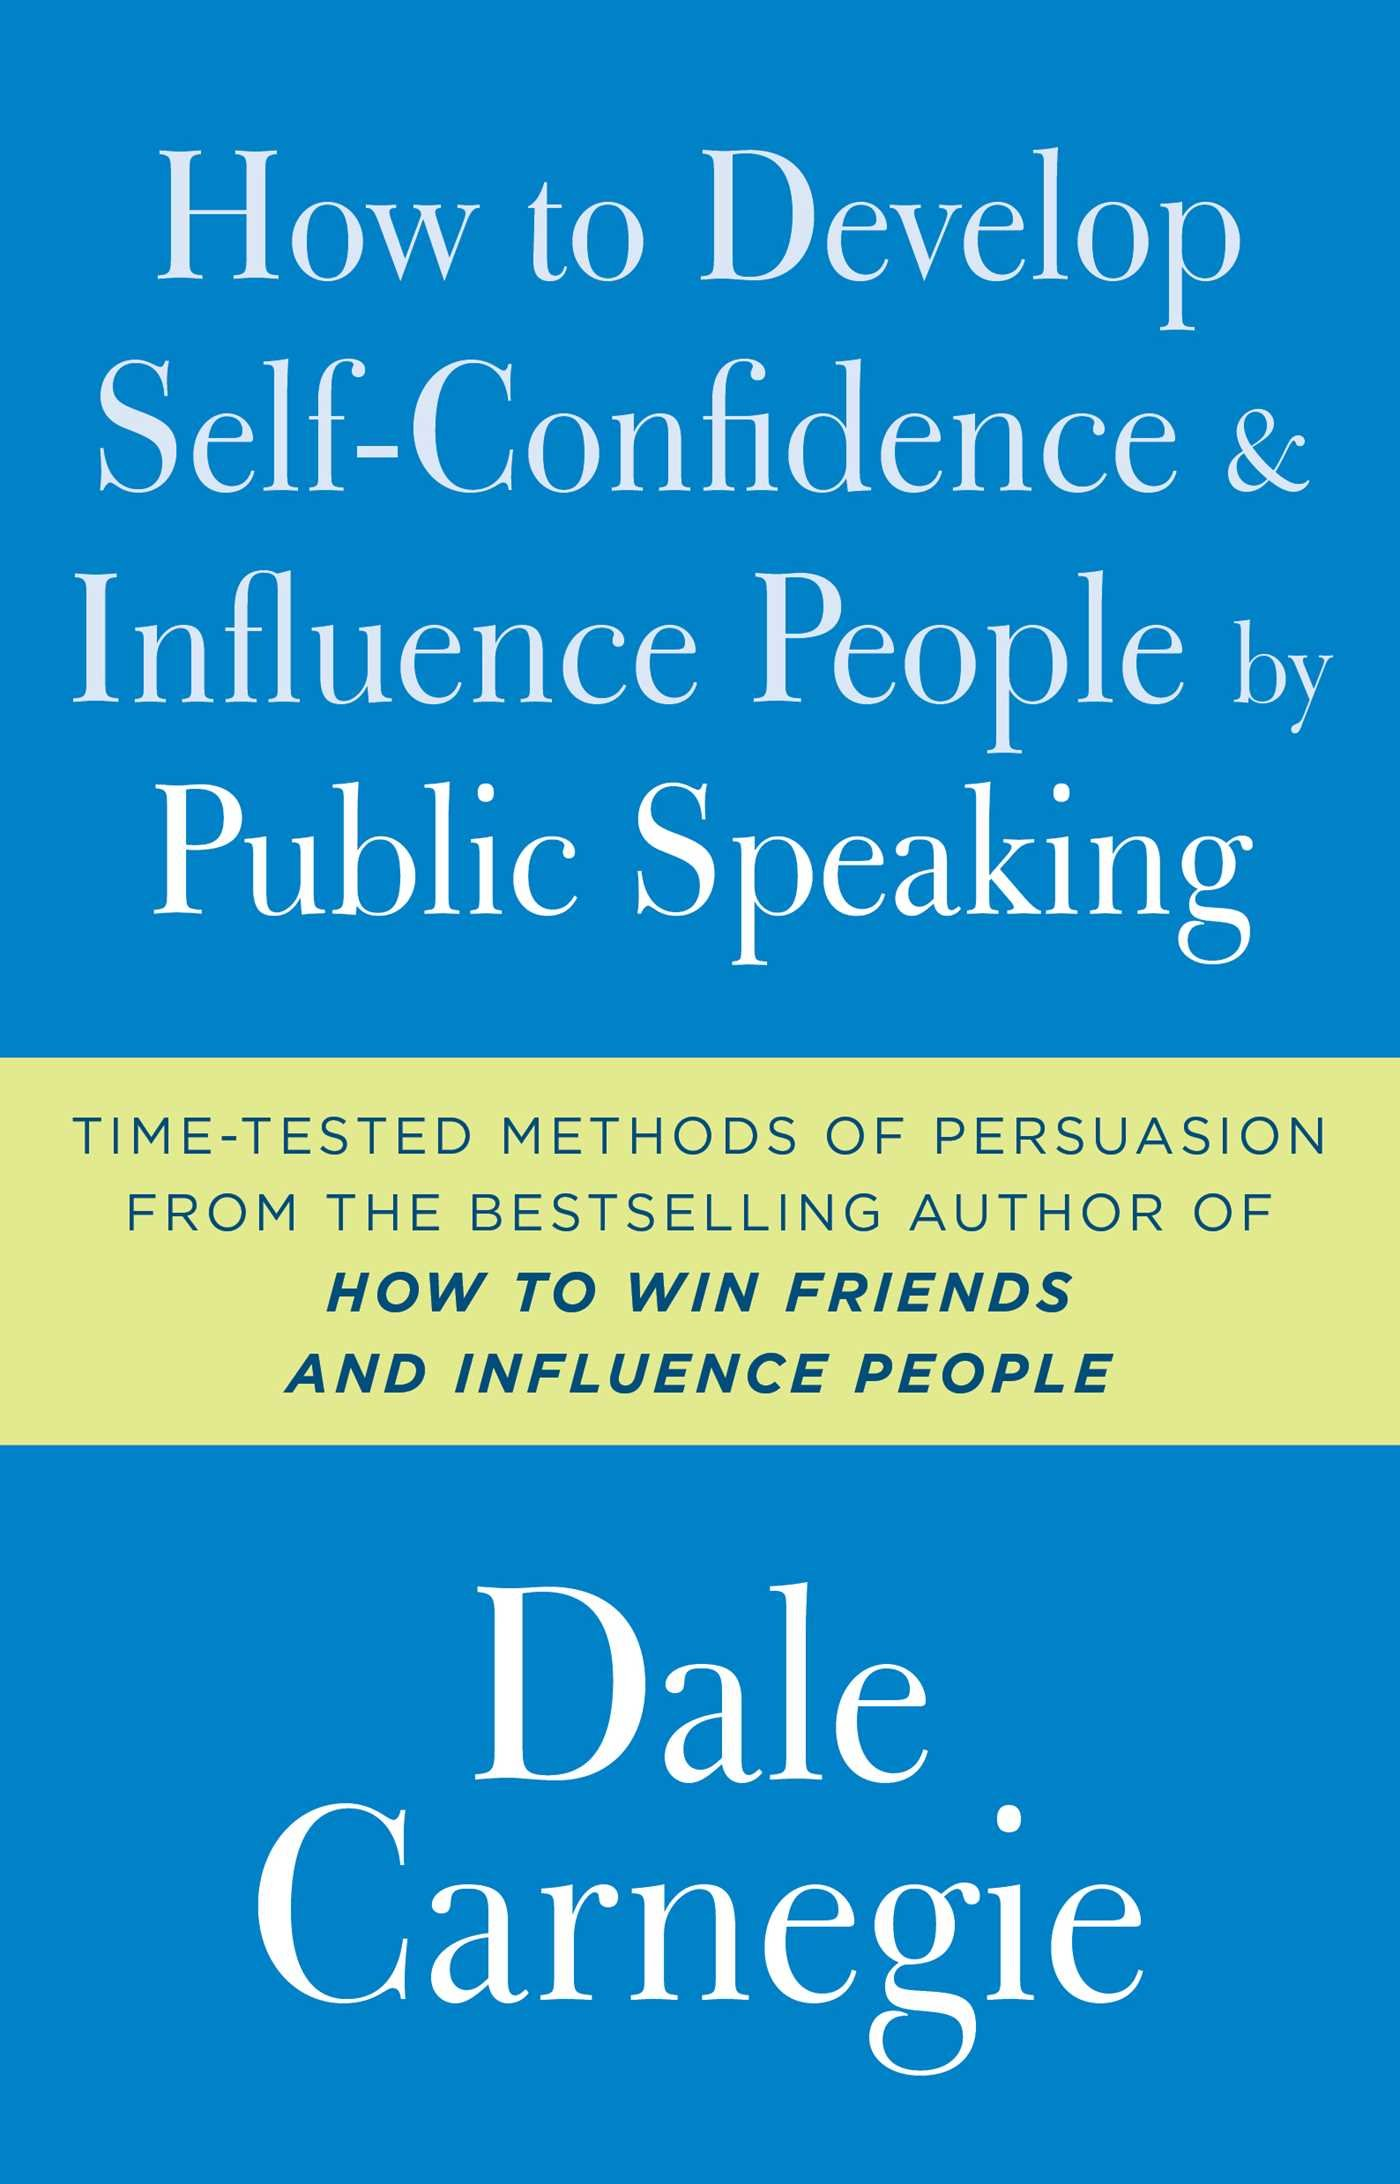 how-to-develop-self-confidence-and-influence-people-by-public-speaking